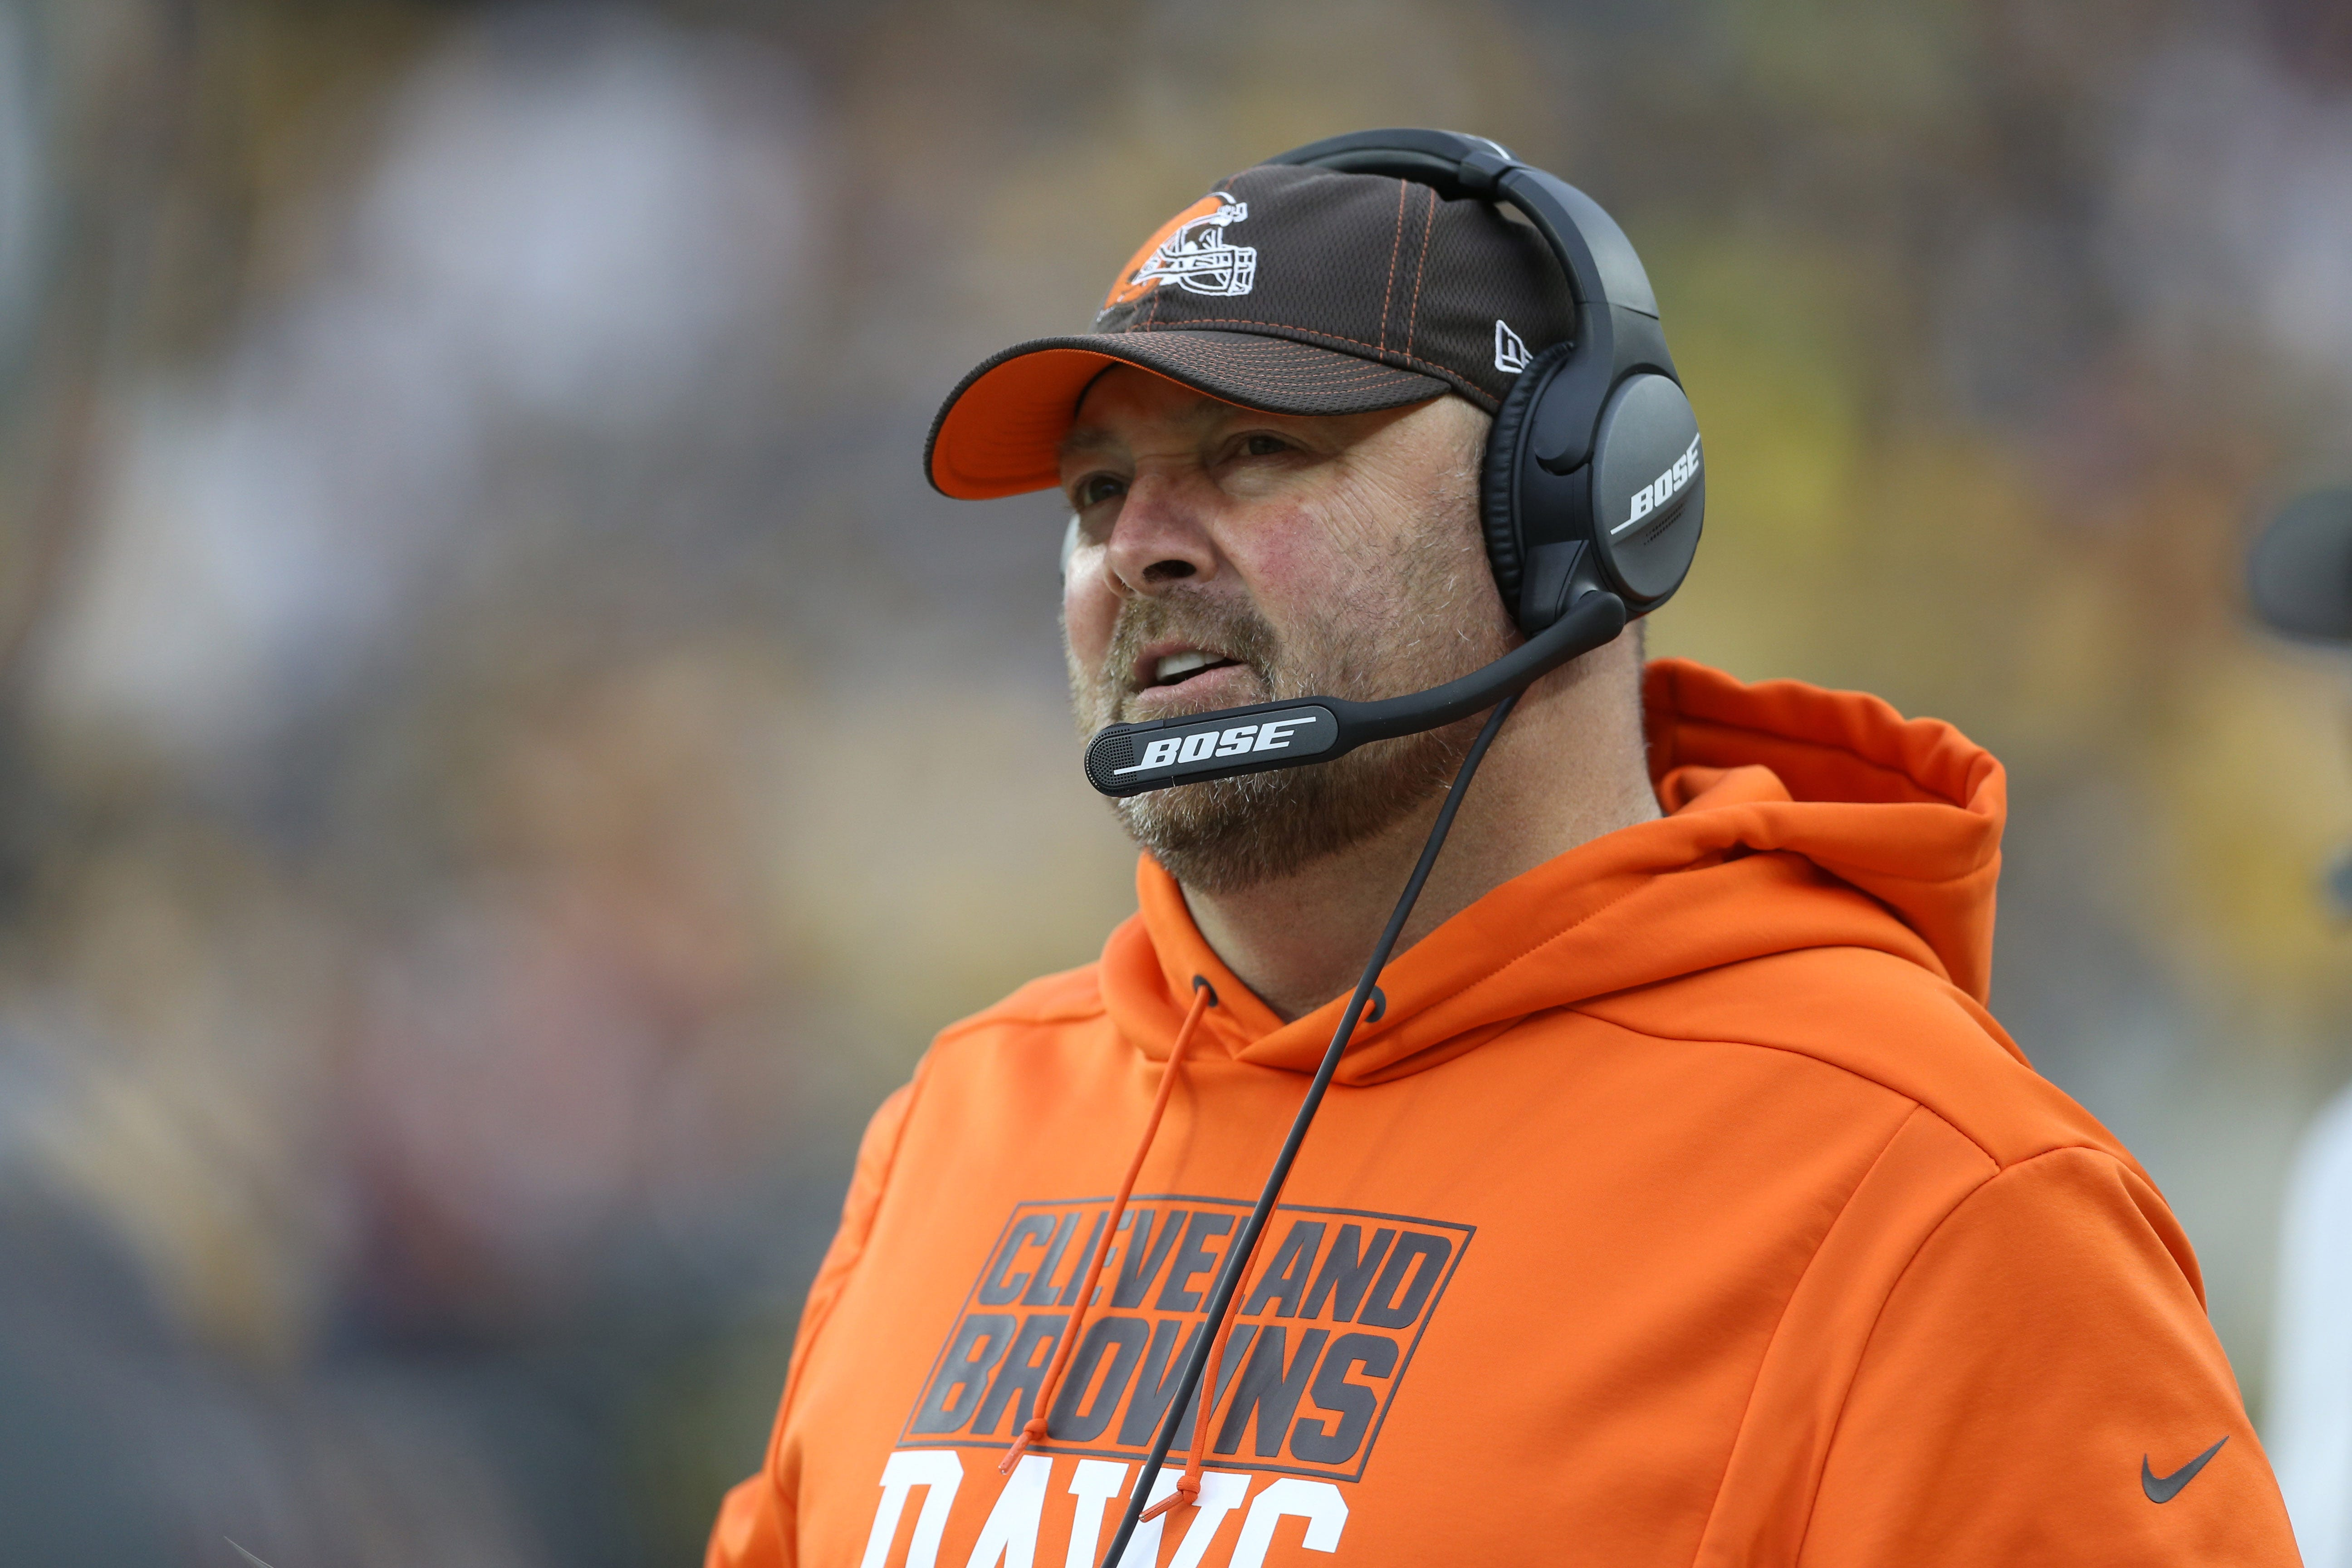 Browns coach Freddie Kitchens regrets giving Steelers extra 'motivation'